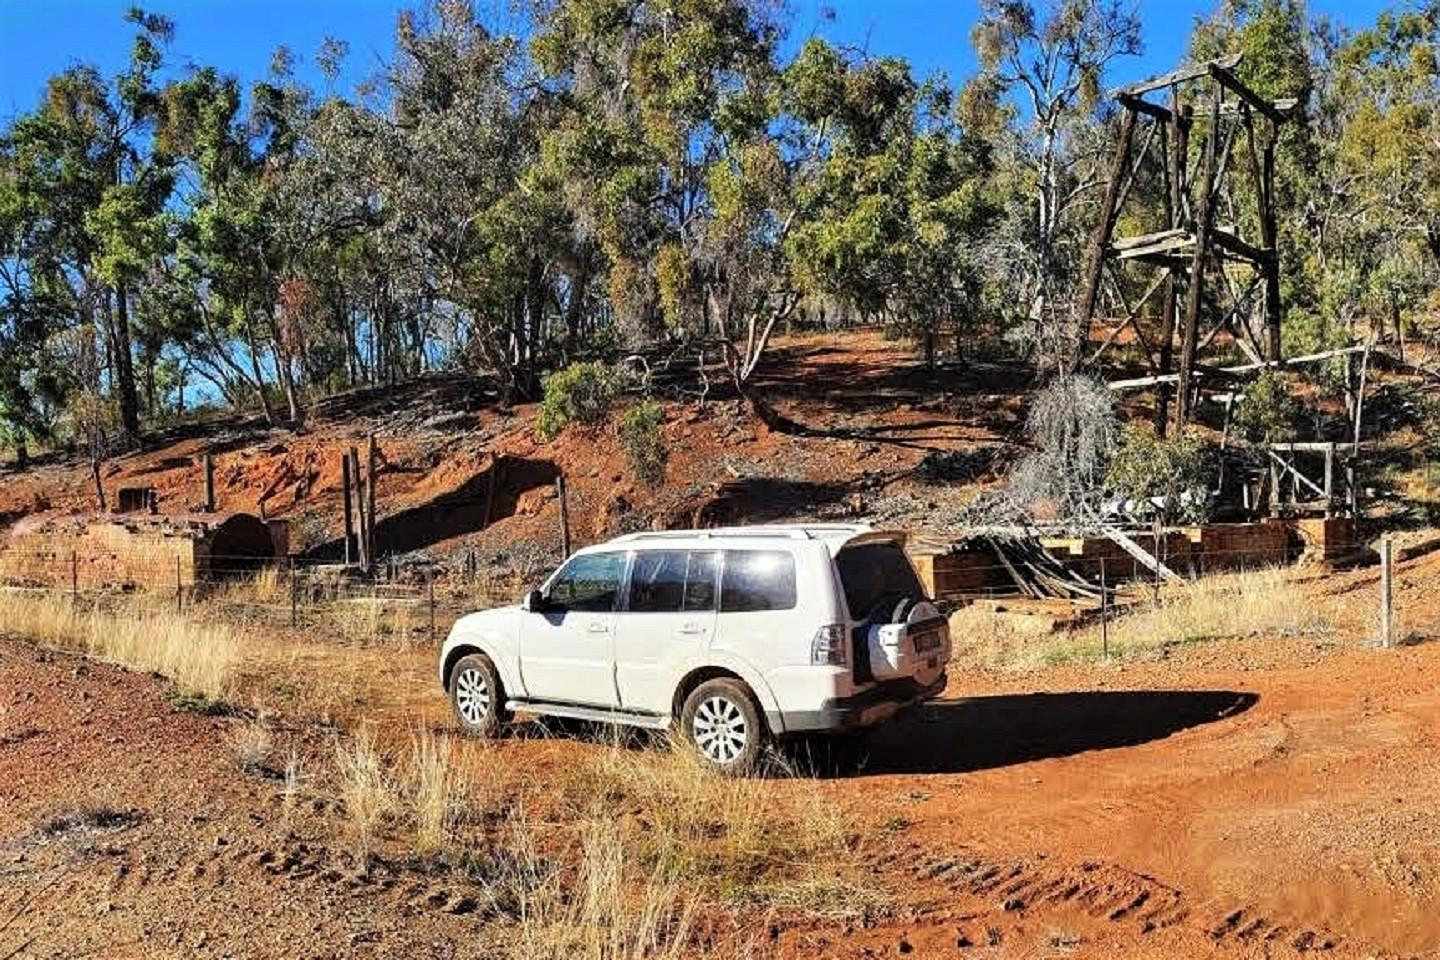 Comet sights copper mineralisation on NSW project